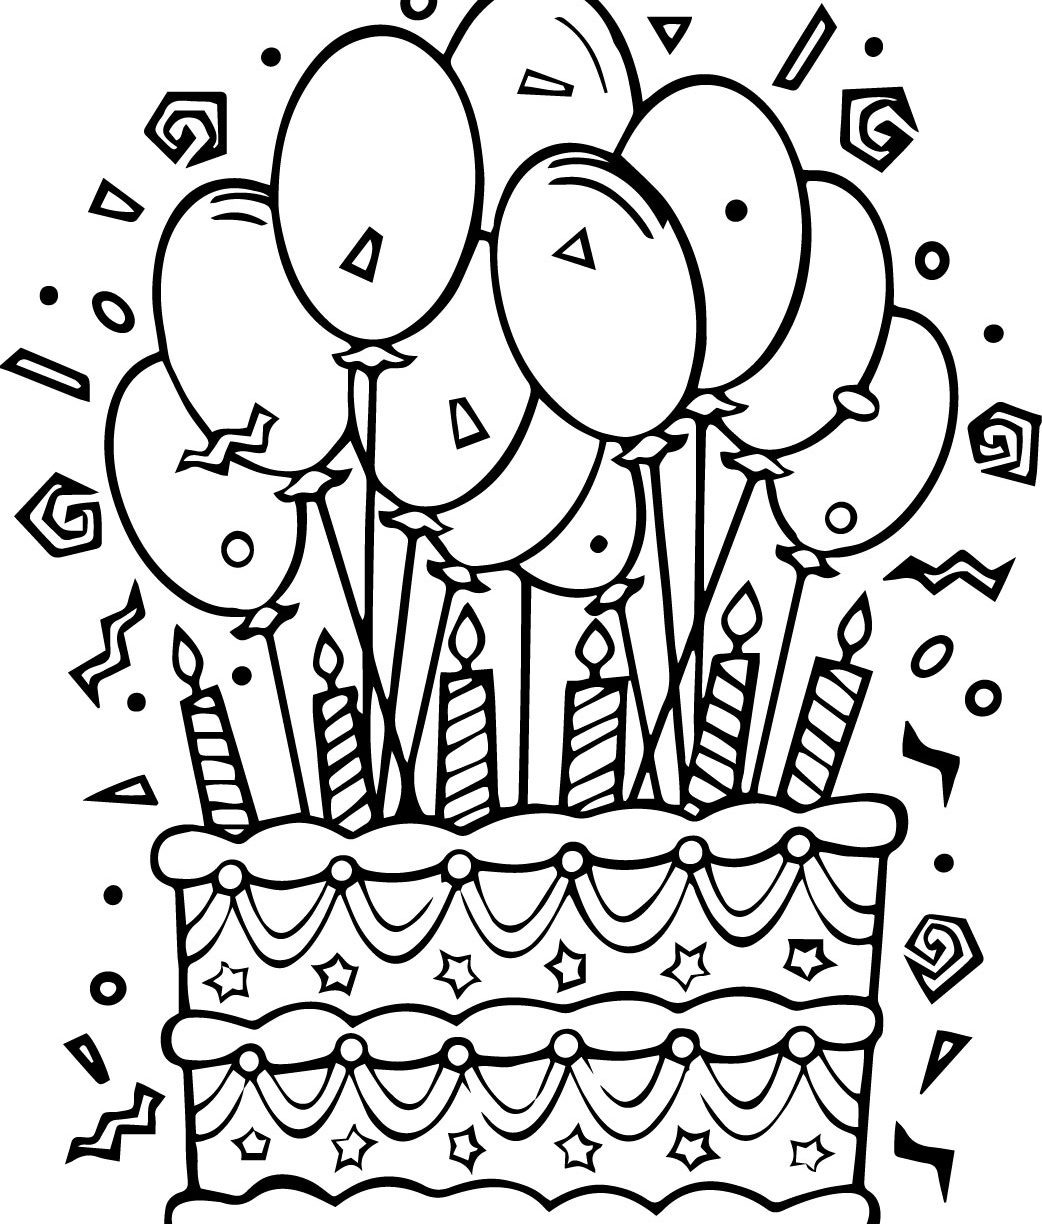 coloring pages for kids birthday cake ; birthday-cake-coloring-pages-1042x1224